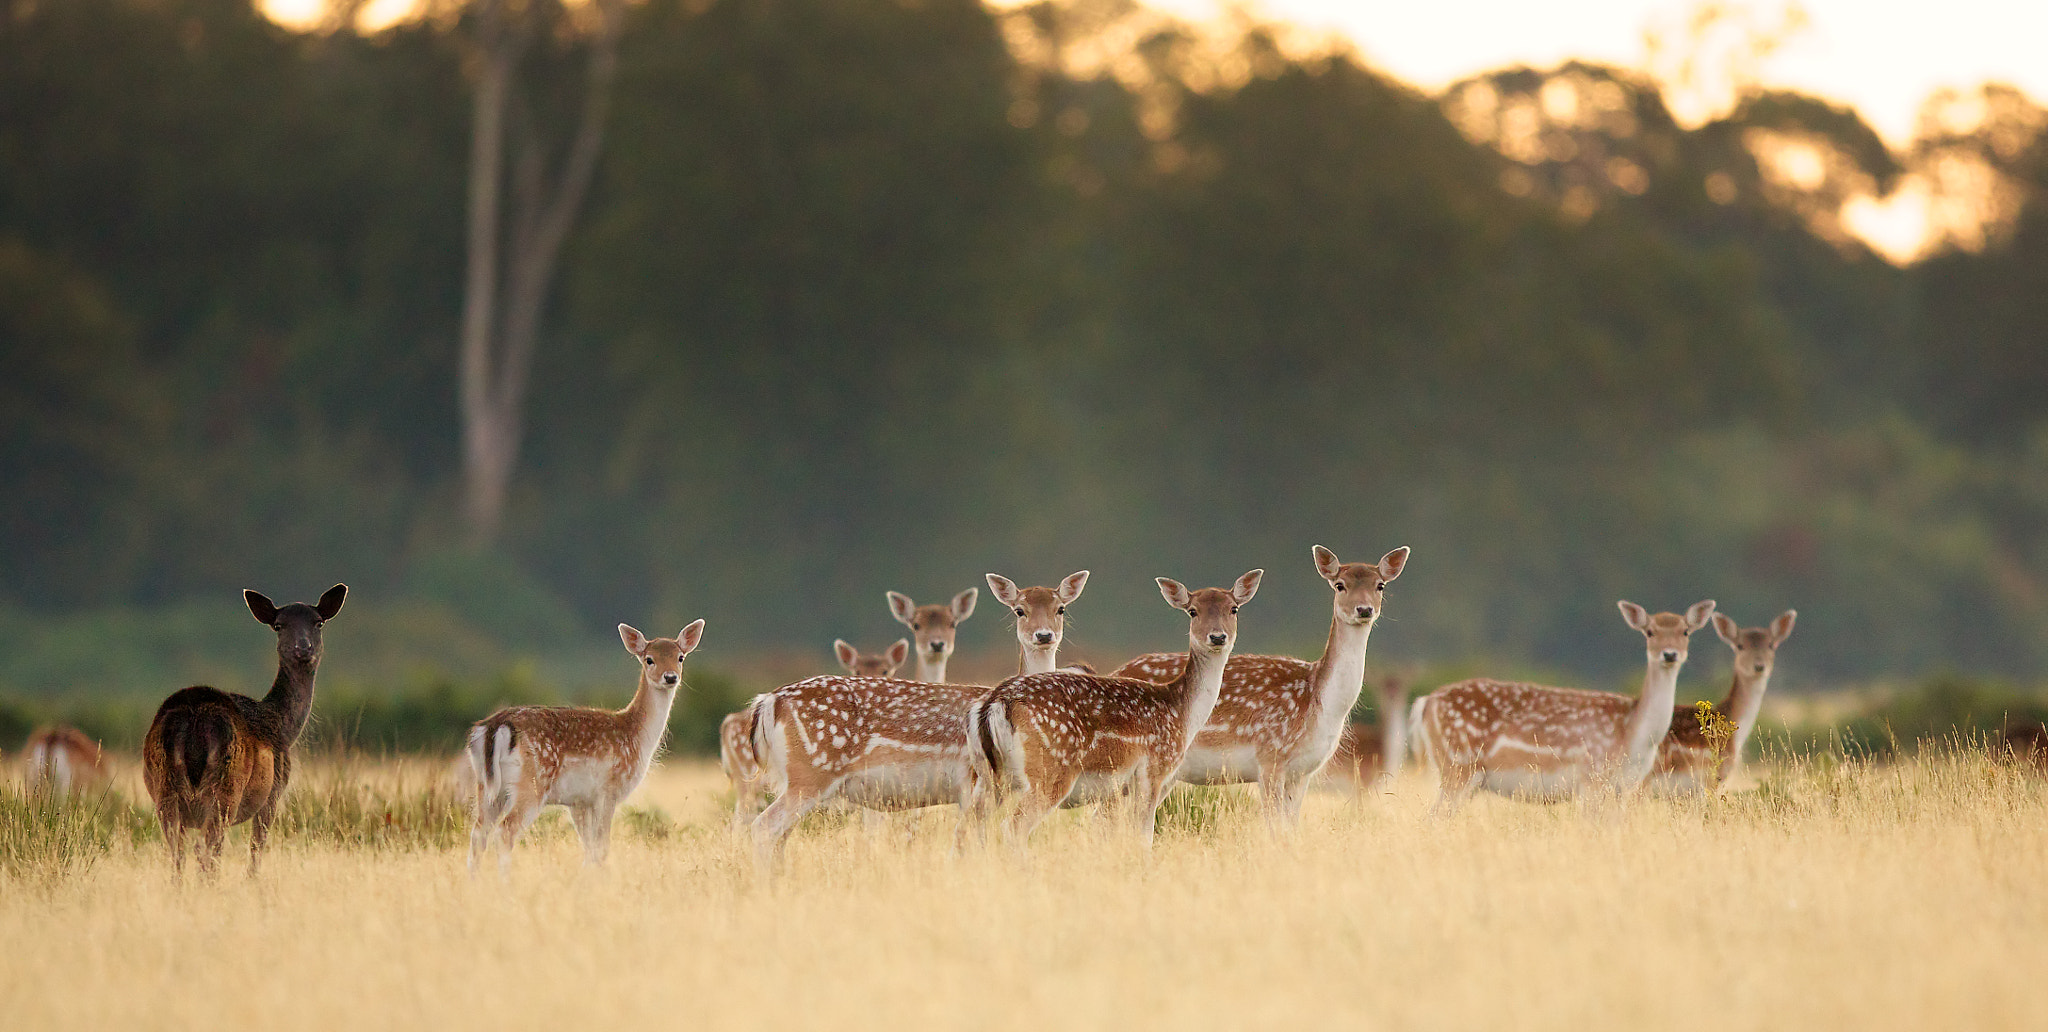 Photograph morning ladies by Mark Bridger on 500px